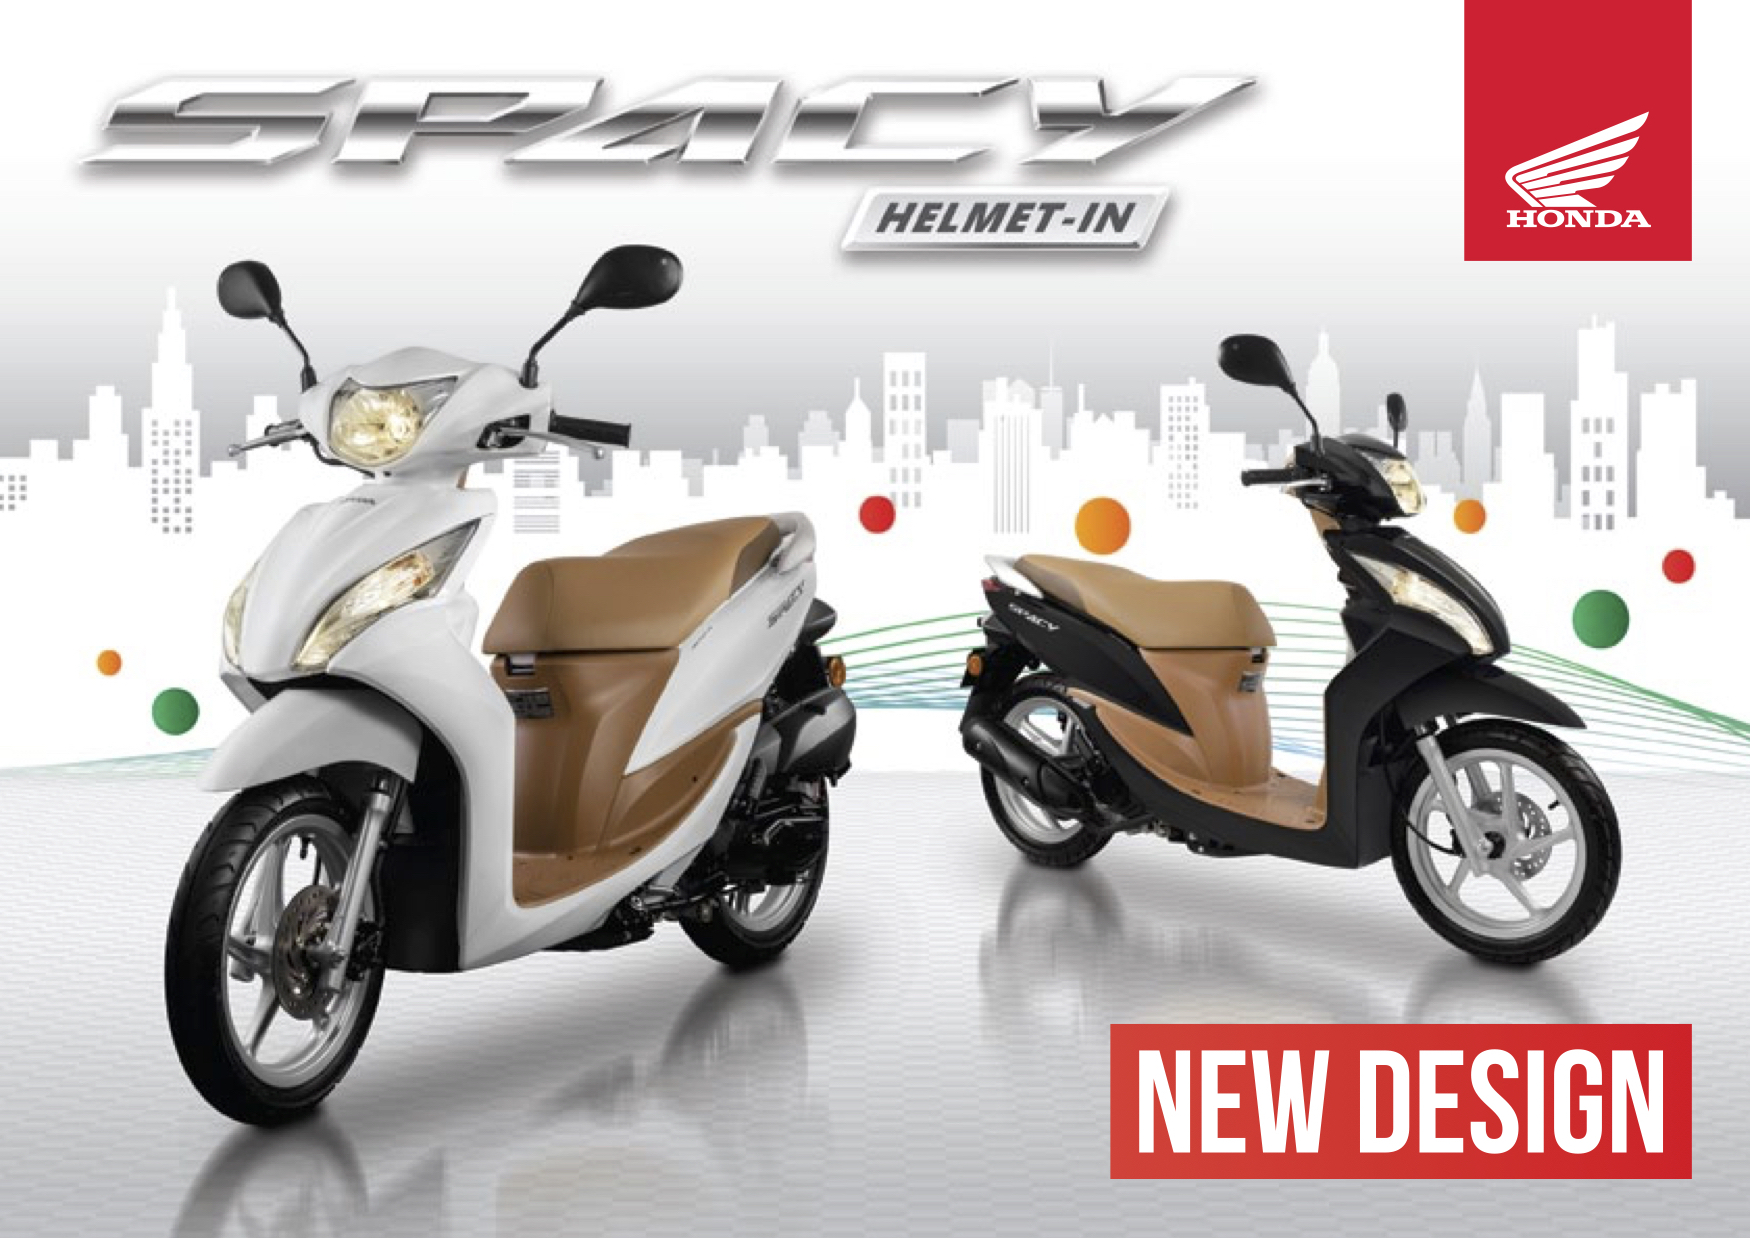 Small Home Improvements 2016 Honda Spacy Facelift Launched Rm4 999